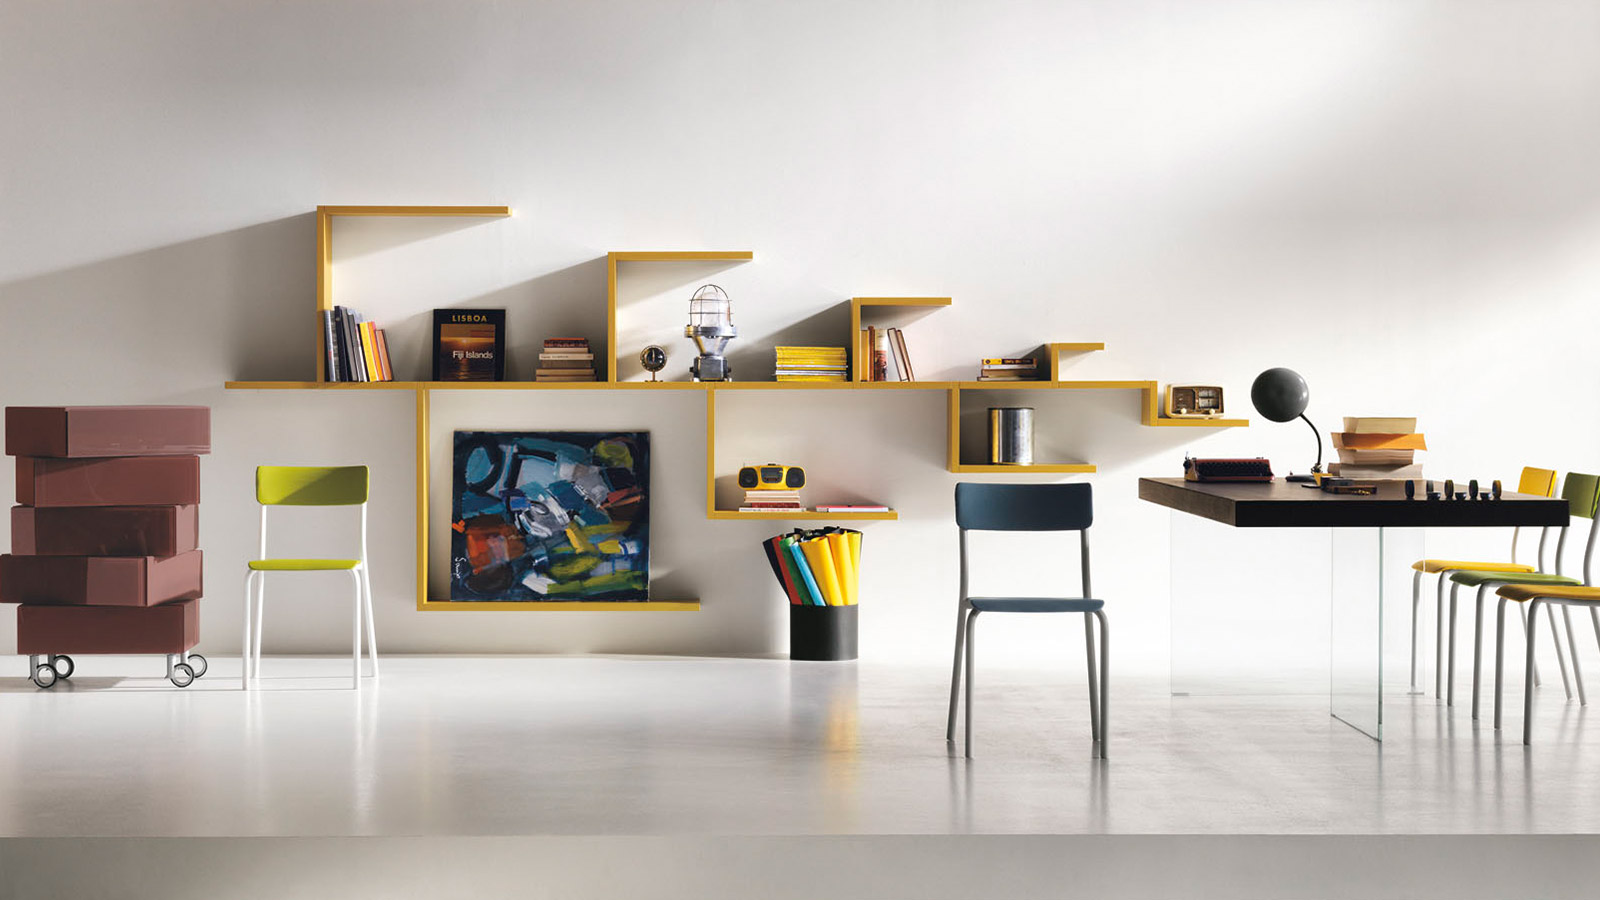 10 modern bookshelf designs to keep your home organized | 10